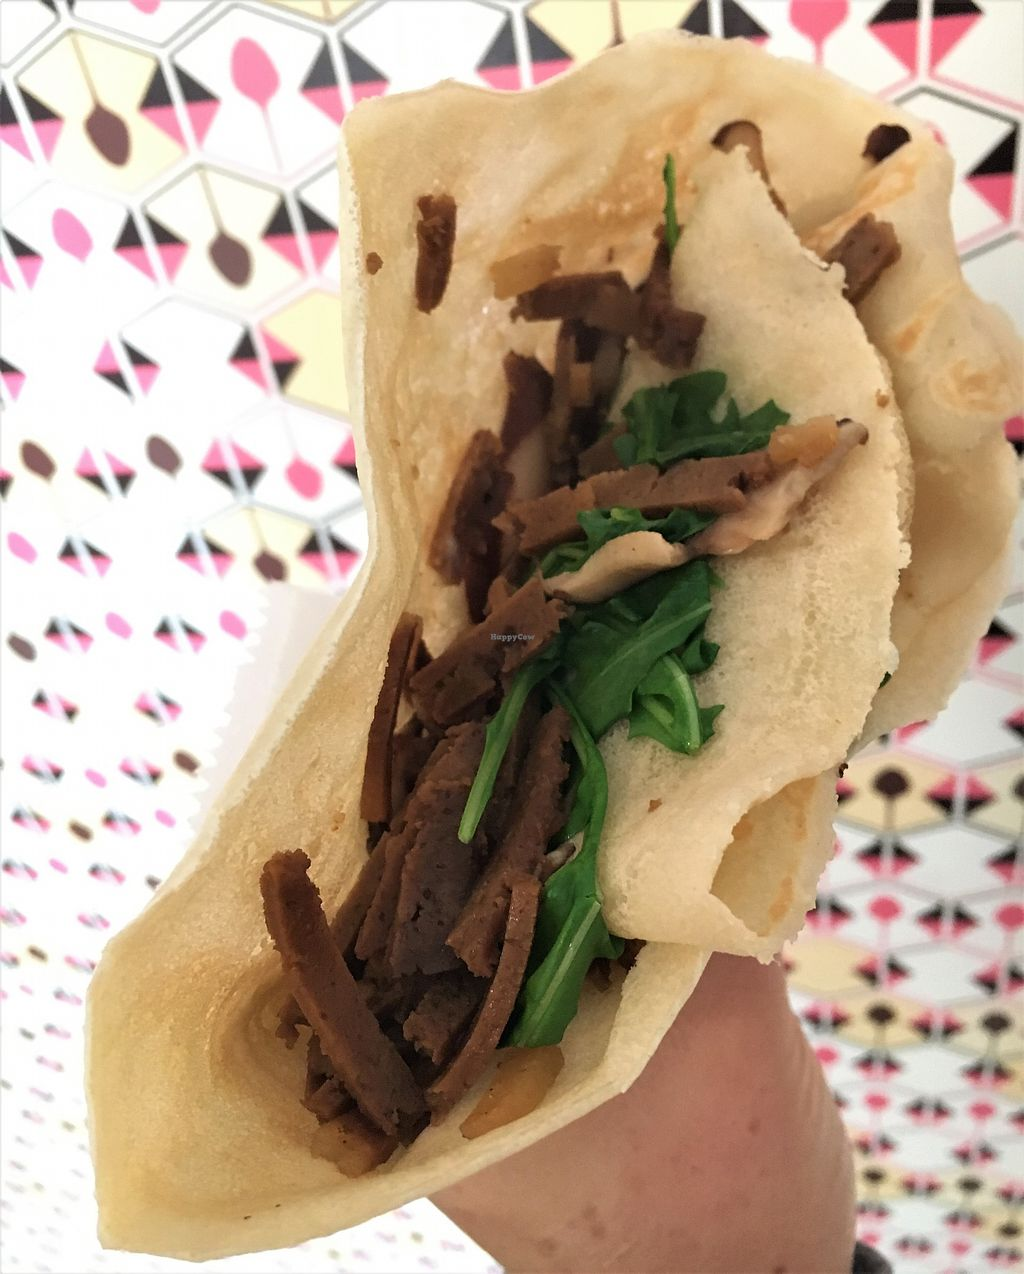 """Photo of Crepe and Spoon  by <a href=""""/members/profile/Laura1G2C"""">Laura1G2C</a> <br/>Bacon and Arugula Crepe <br/> December 1, 2017  - <a href='/contact/abuse/image/105438/331223'>Report</a>"""